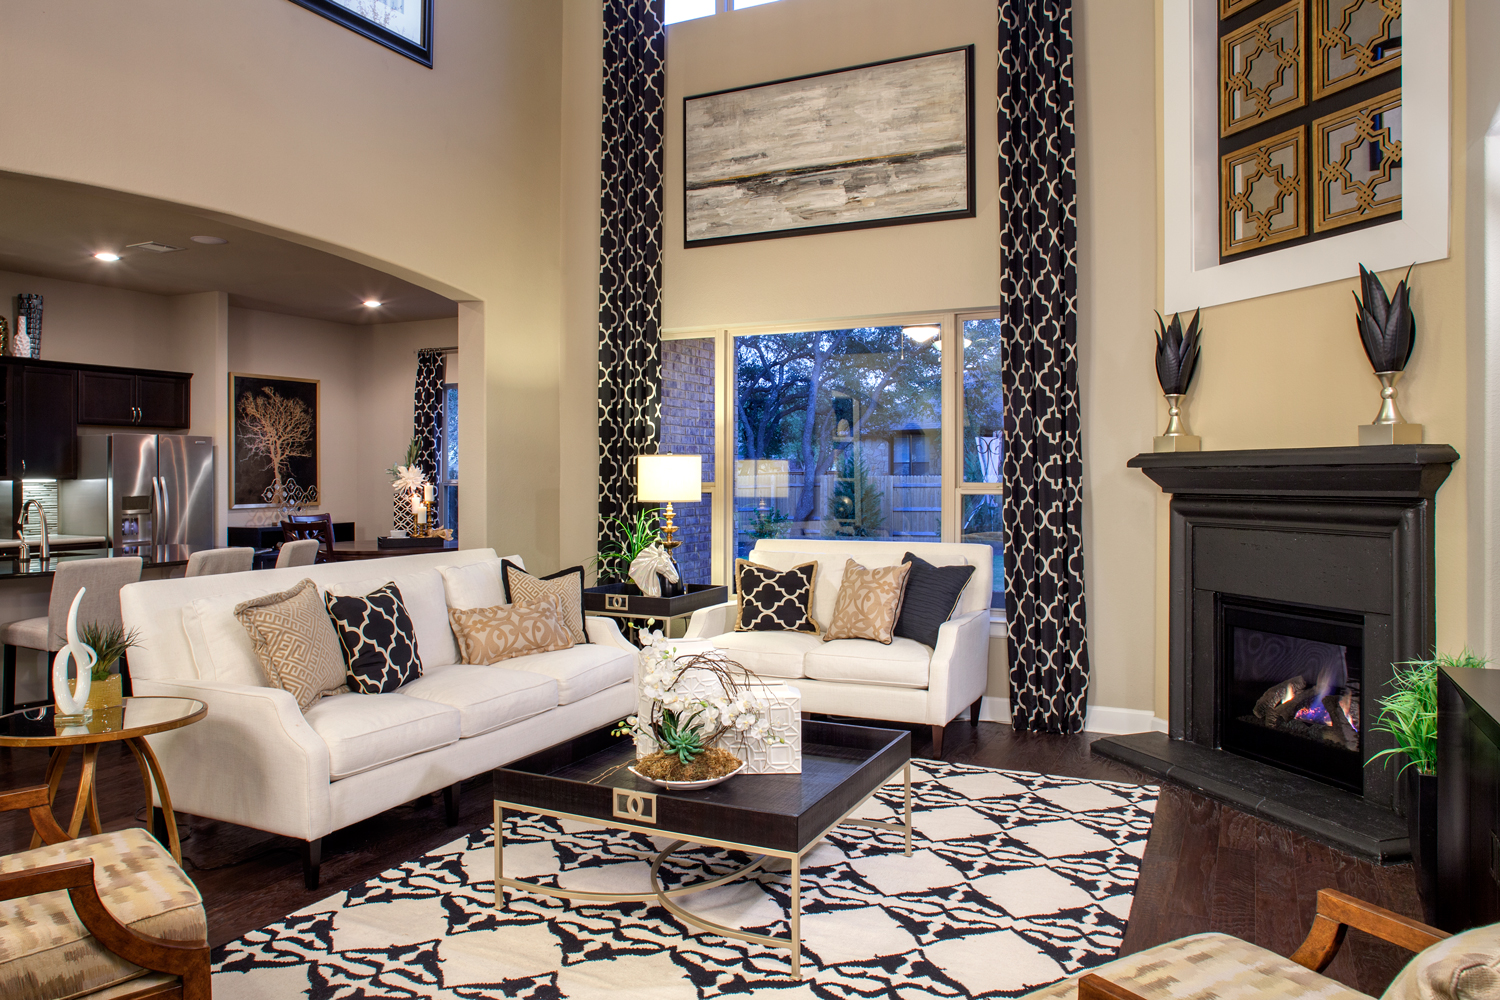 Living-Room--Grand-Haven-Pearson-Place-7020--Guilded-Tranquility-(4).jpg